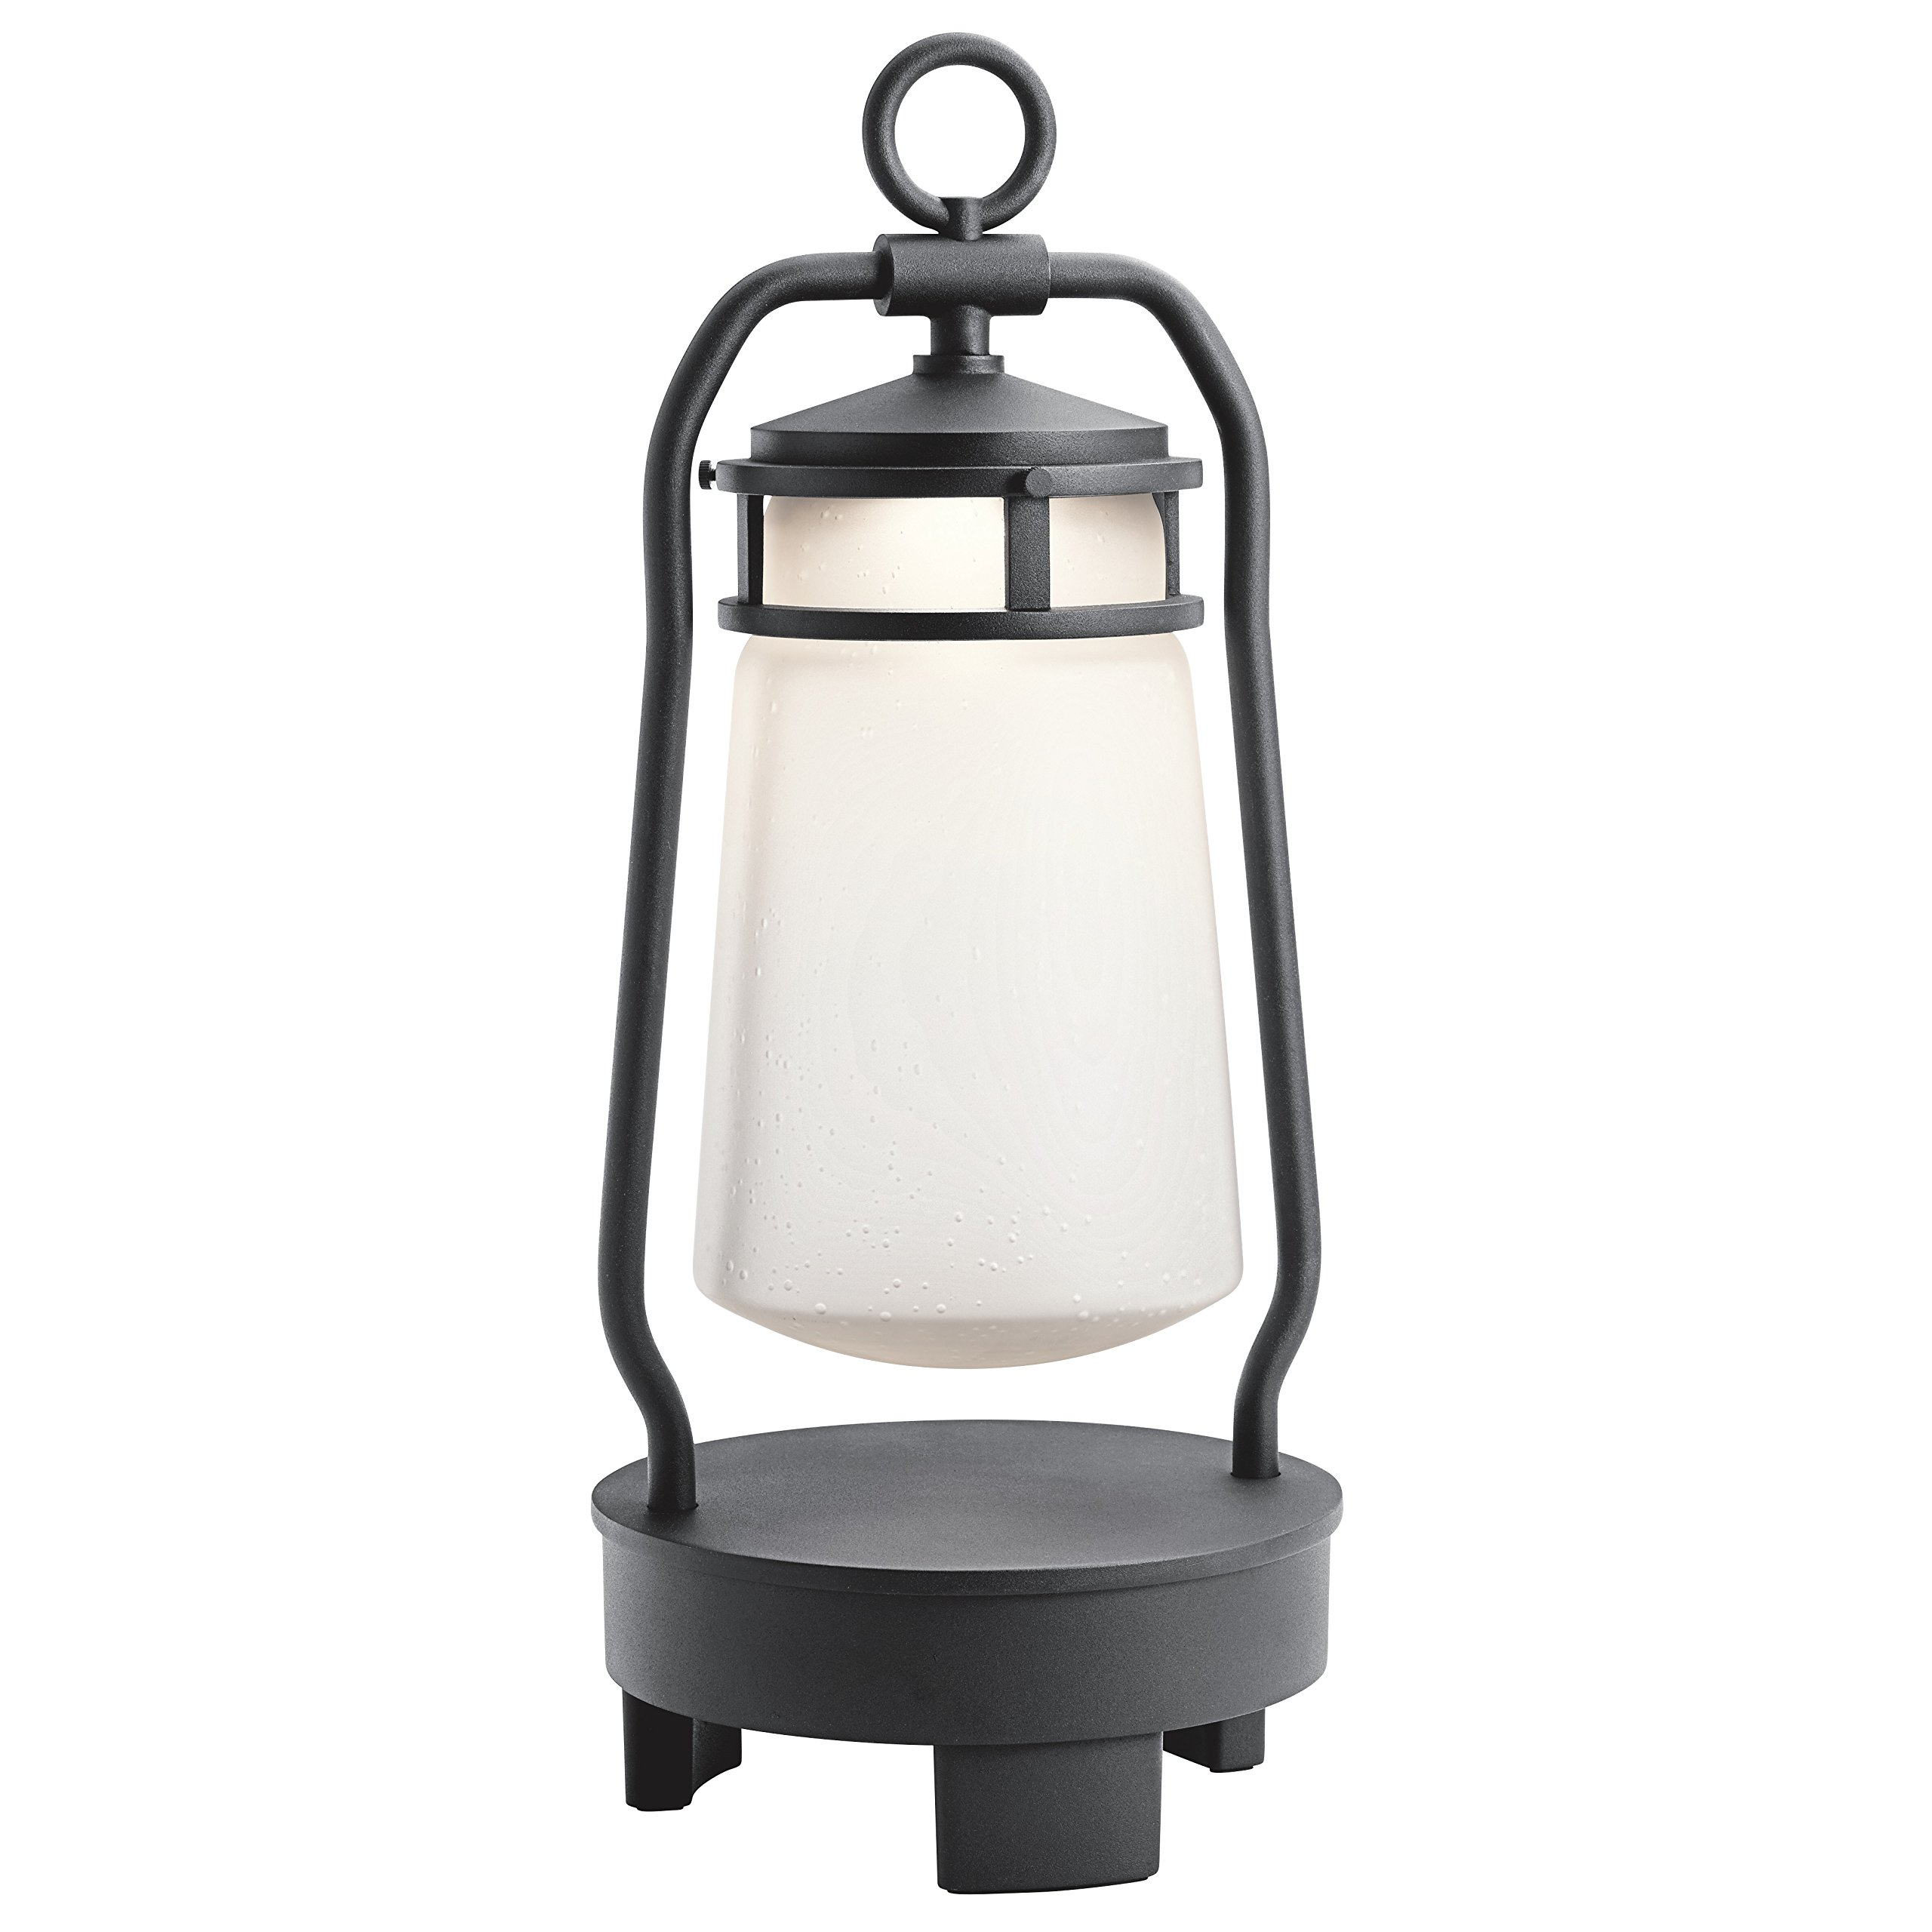 Kichler 49500BKTLED Lyndon Portable Bluetooth Speaker Outdoor Lantern, 1 Light LED 7 Watts, Textured Black